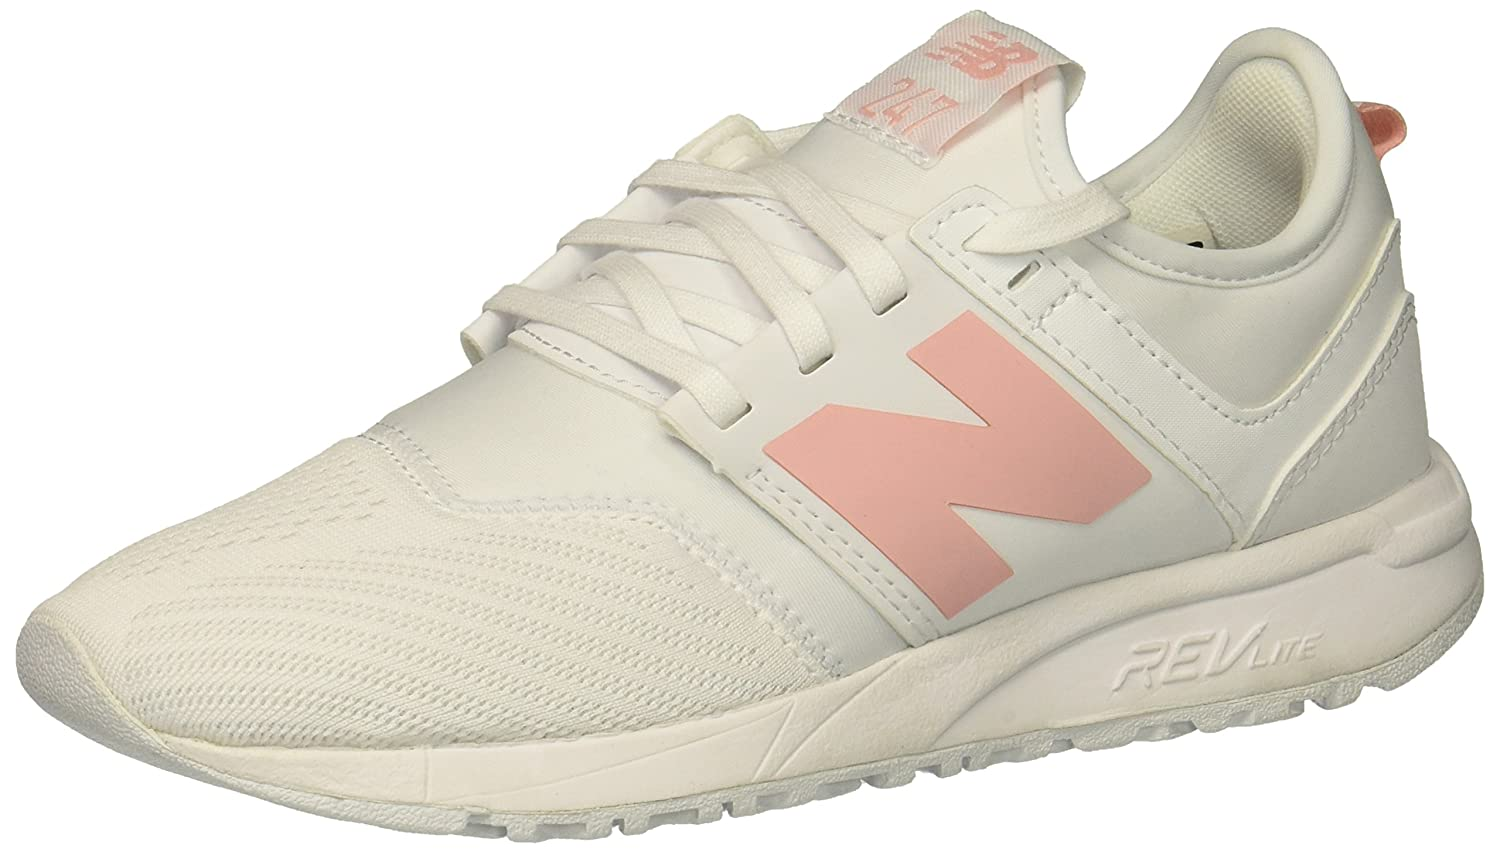 New Balance Women's 247v1 Sneaker B0784QC2V8 9.5 D US|White/Pink